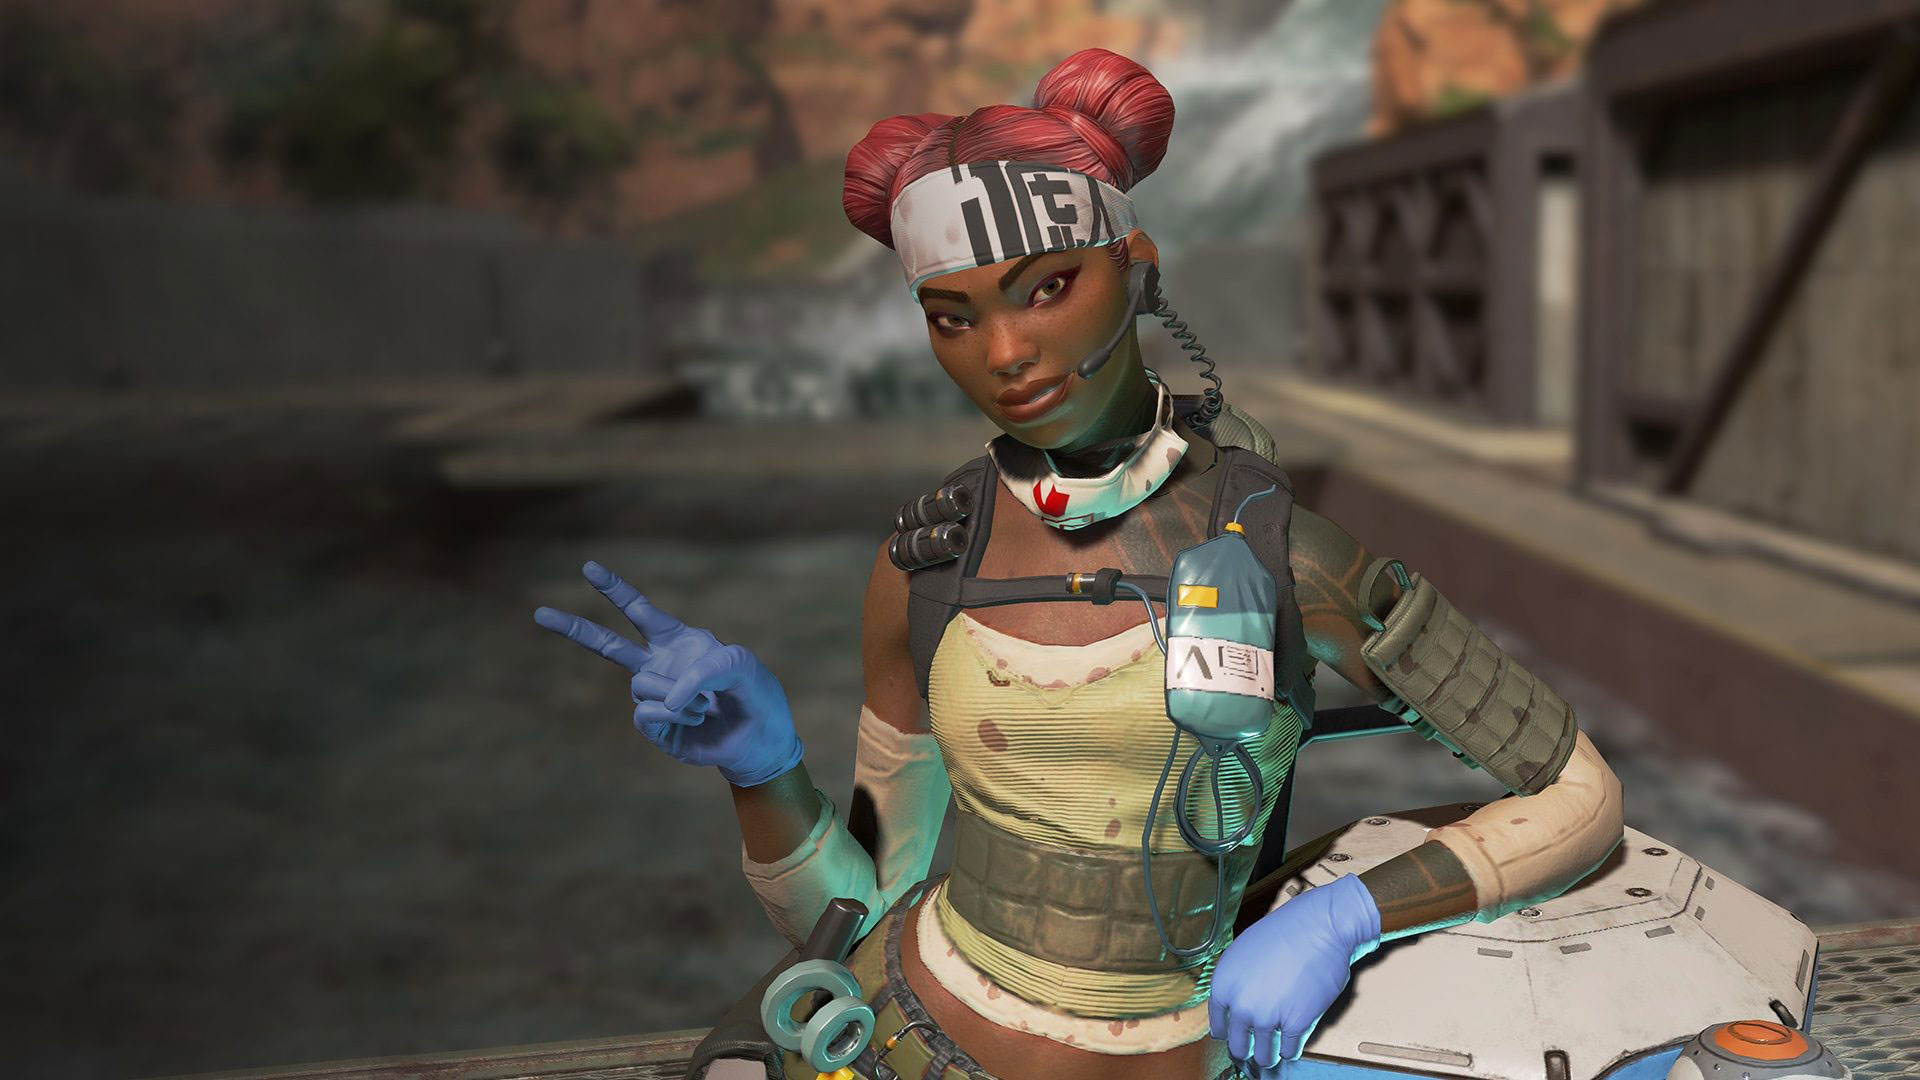 Twitch streamer banned after applying blackface on stream for Lifeline cosplay